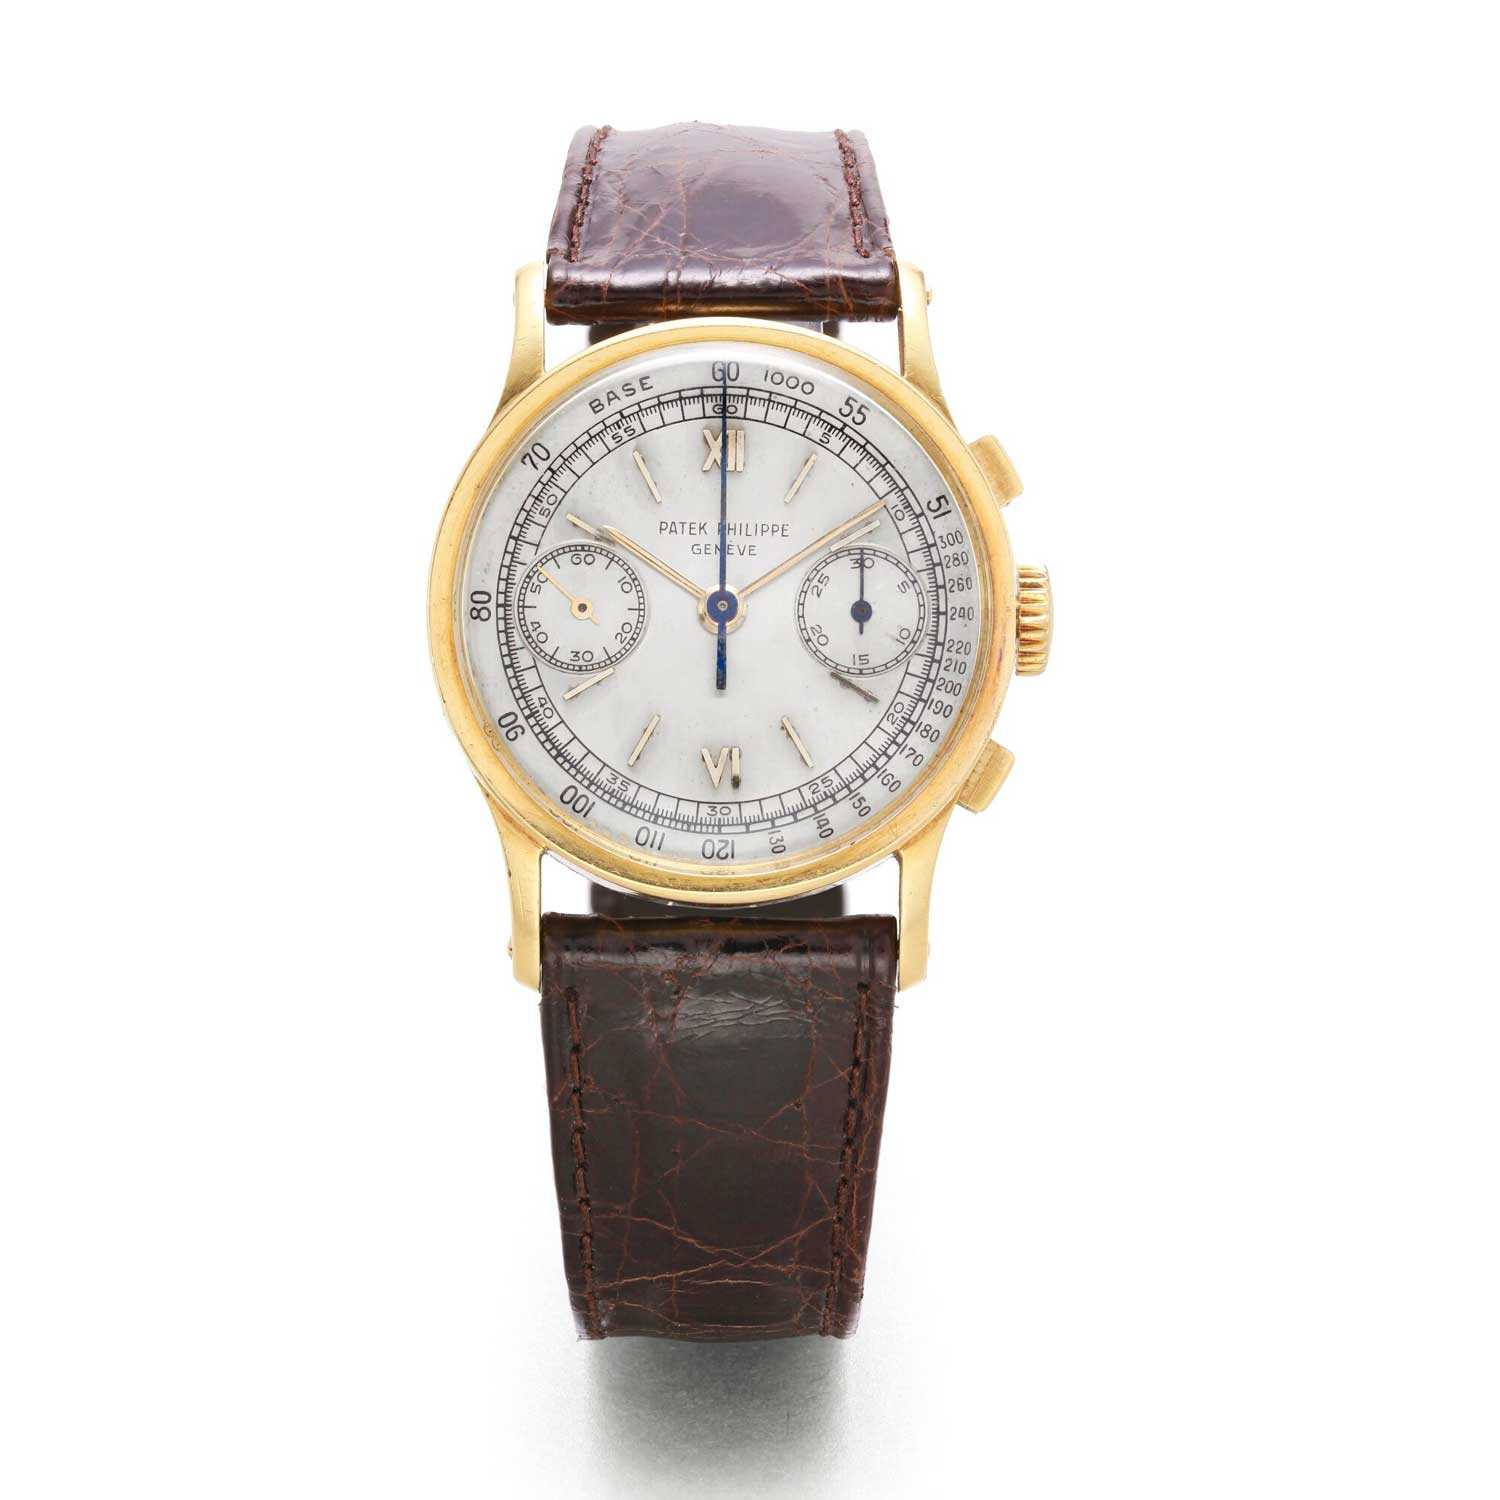 1952 Patek Philippe ref. 533 yellow gold chronograph with silvered dial and Roman numerals (Image: Sothebys.com)